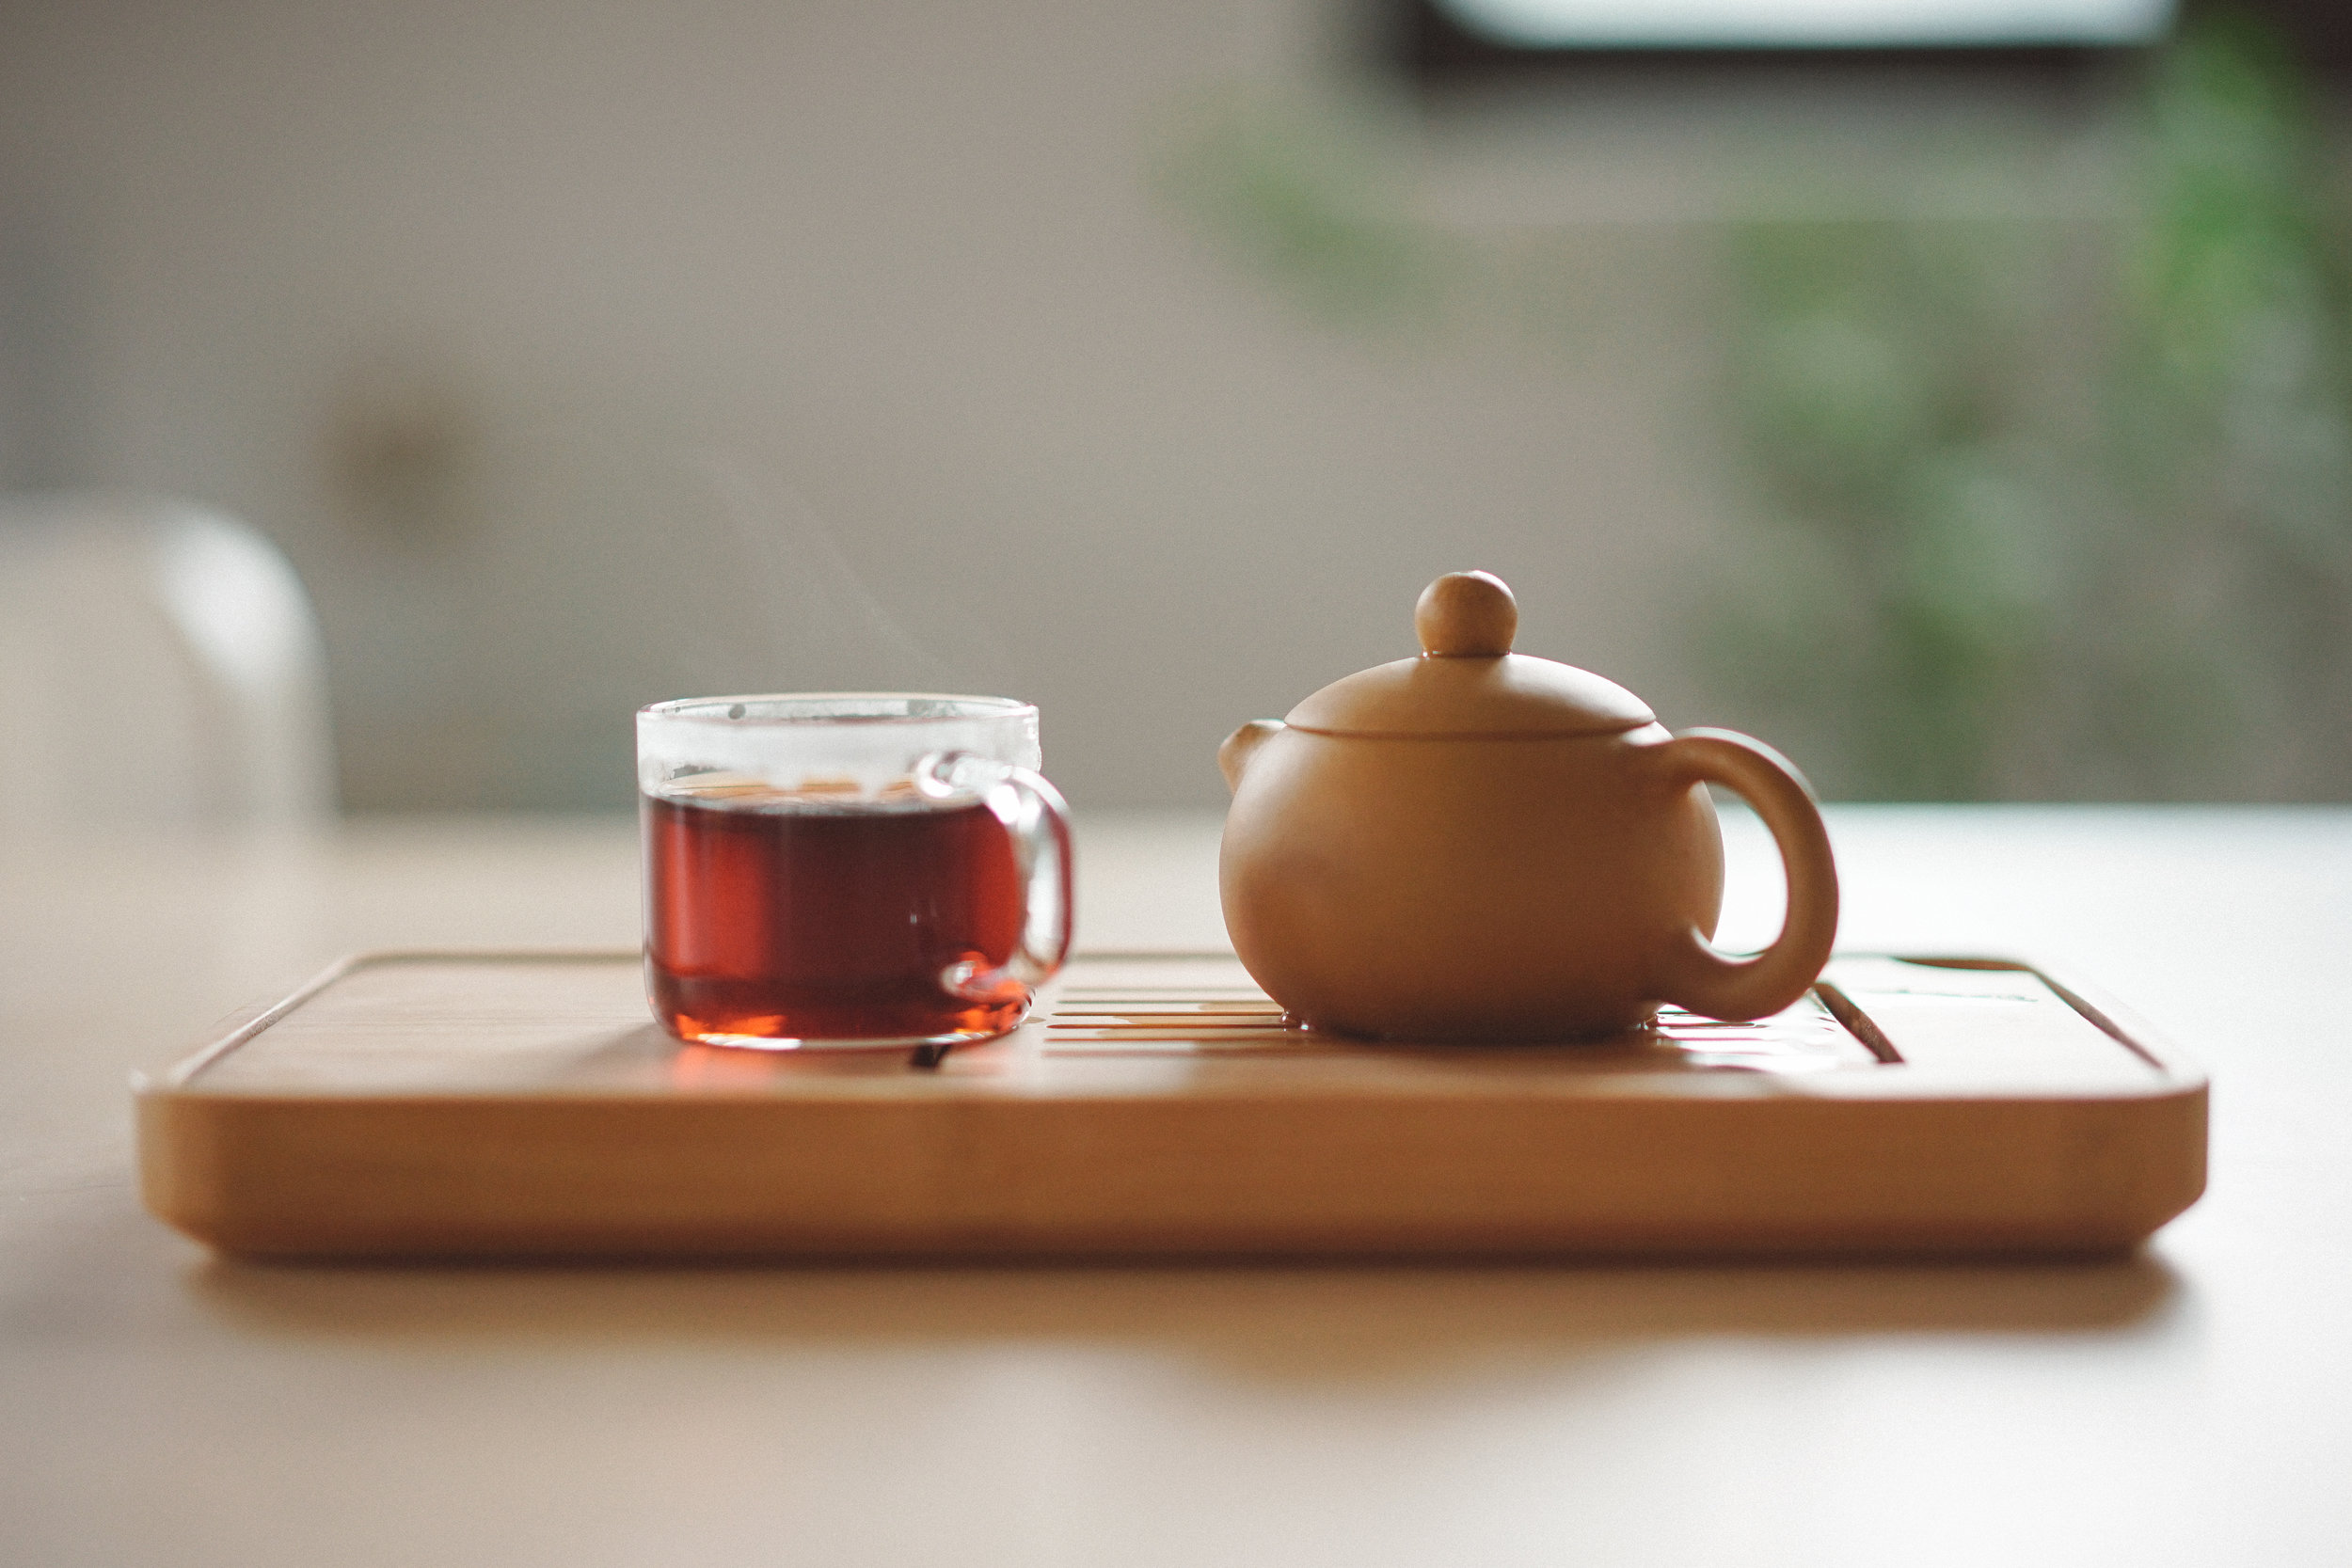 KEEP YOUR MEALS TANNIN FREE - It is better to drink tea and coffee between meals, rather than with your meals. The tannin in tea, and to lesser extent coffee, reduces the amount of iron we can use from food.